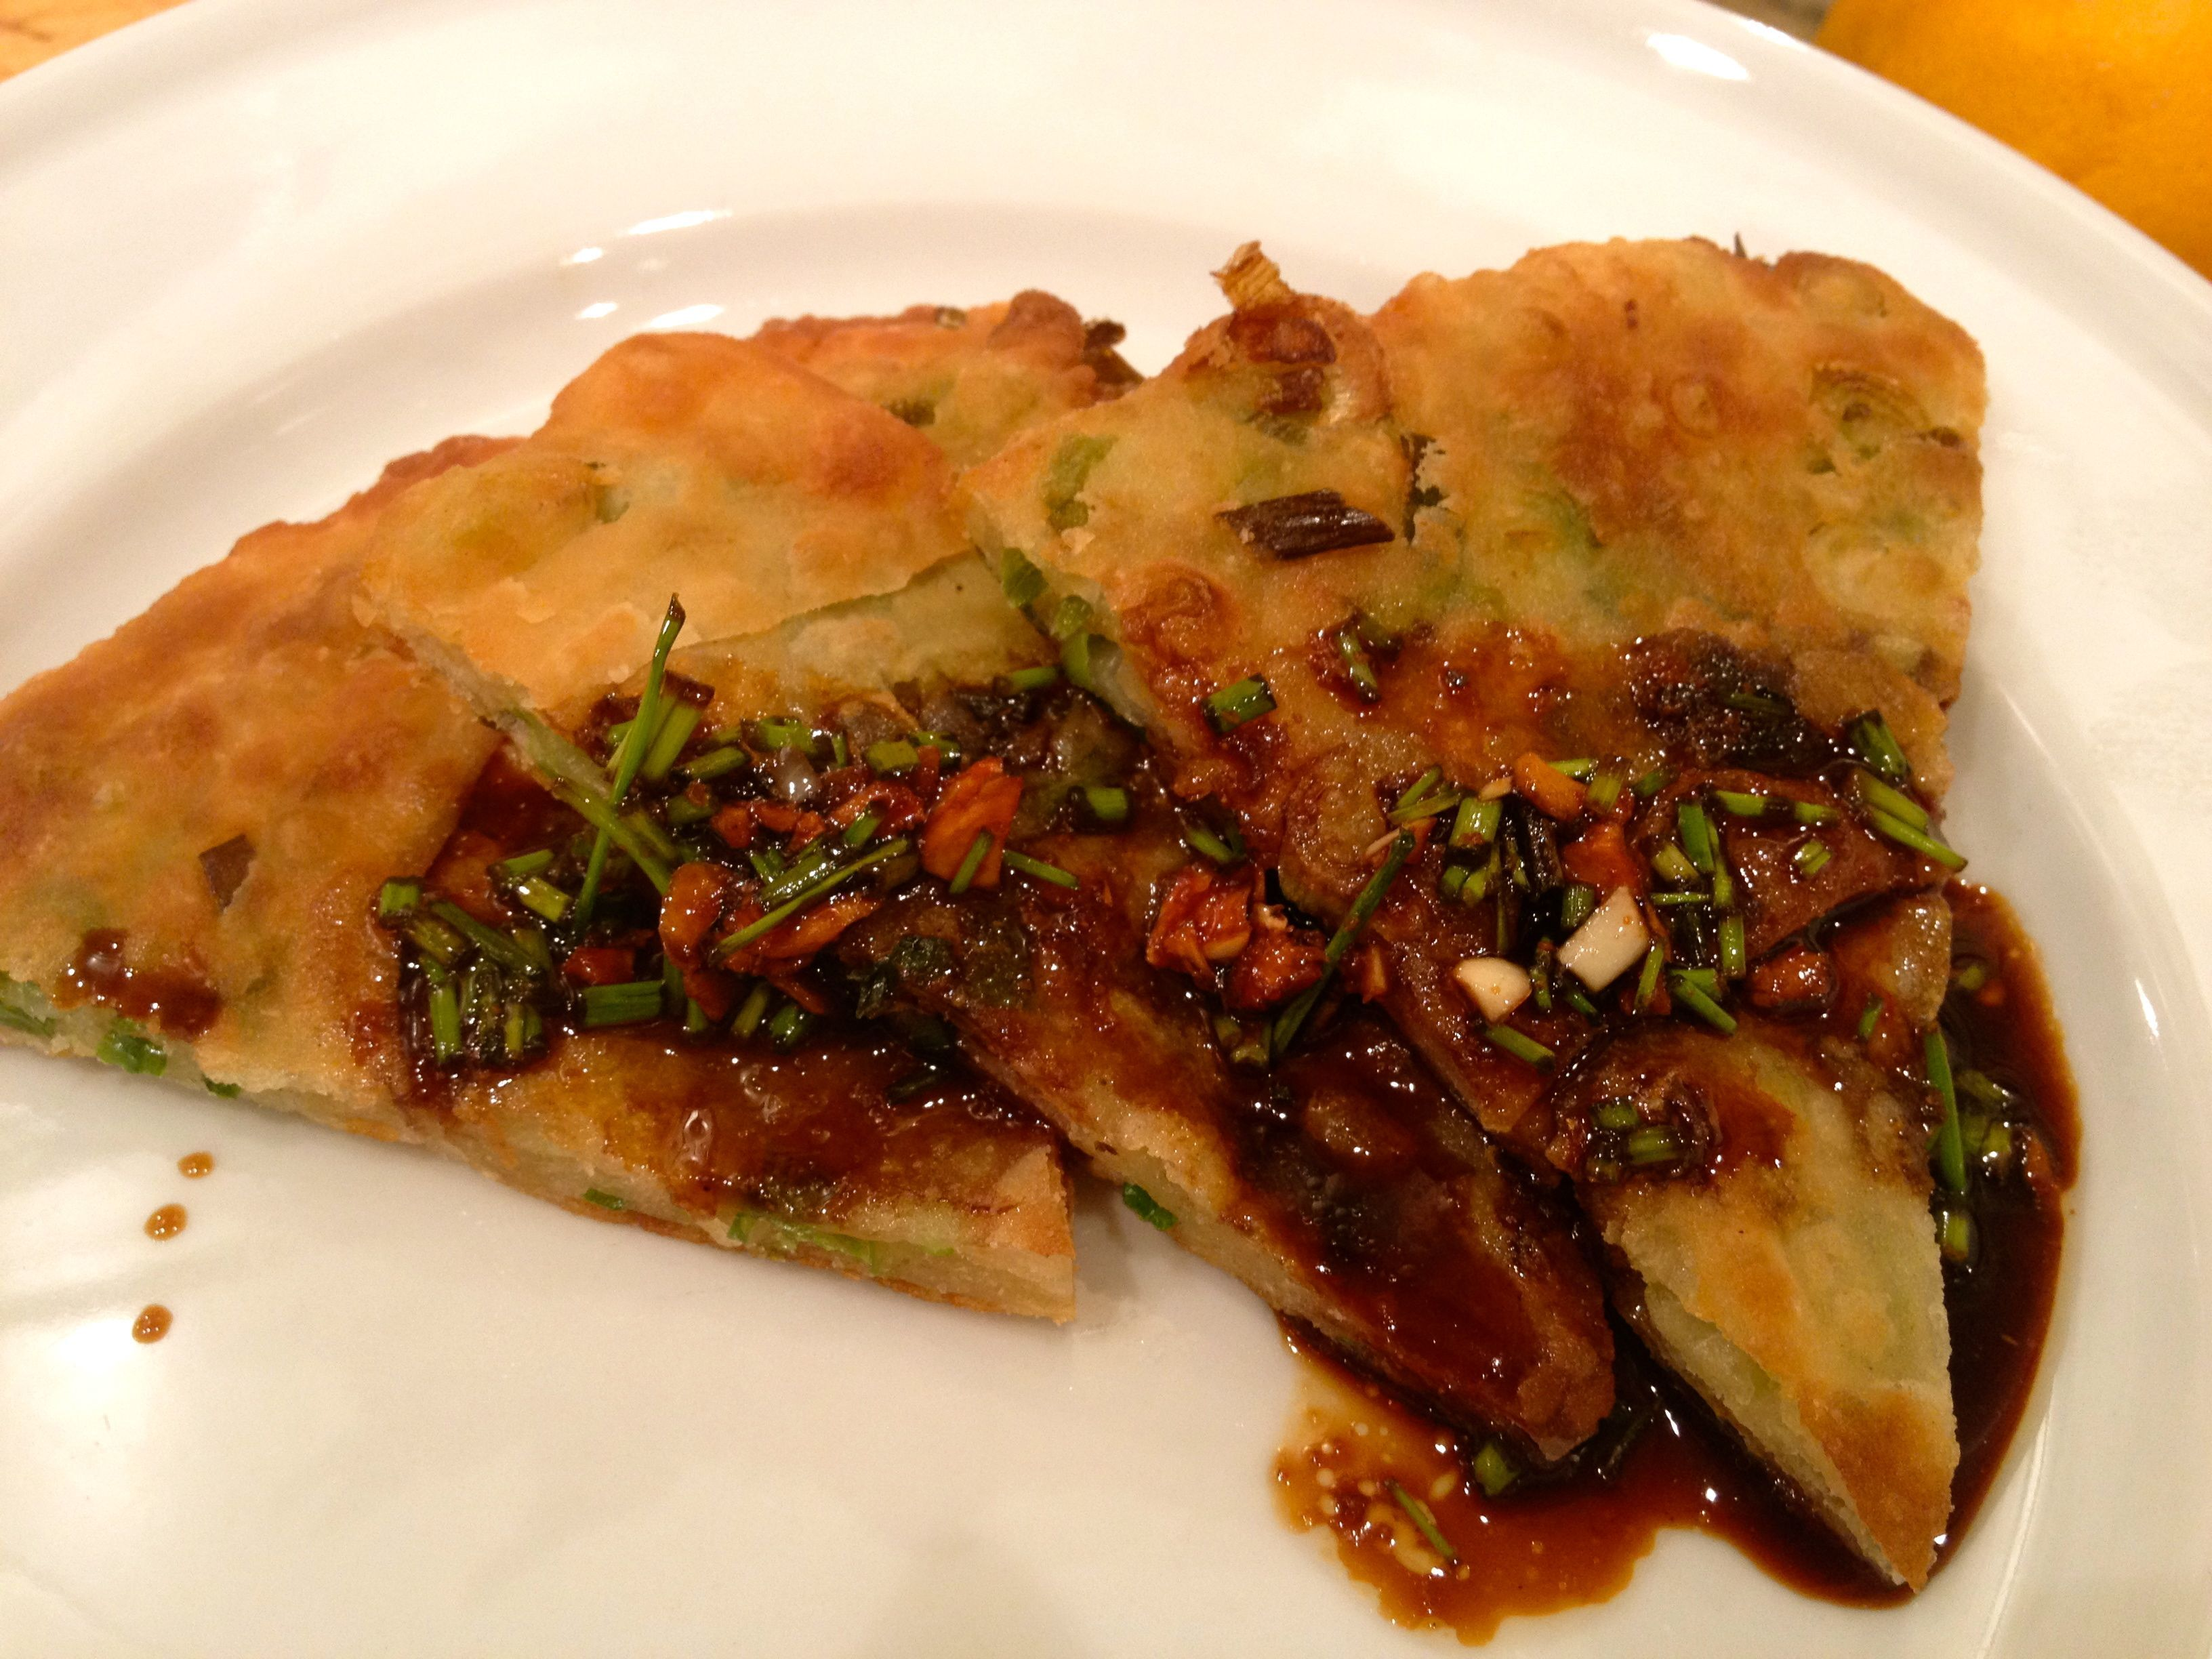 Homemade Scallion Pancakes….Talk about some good eats!